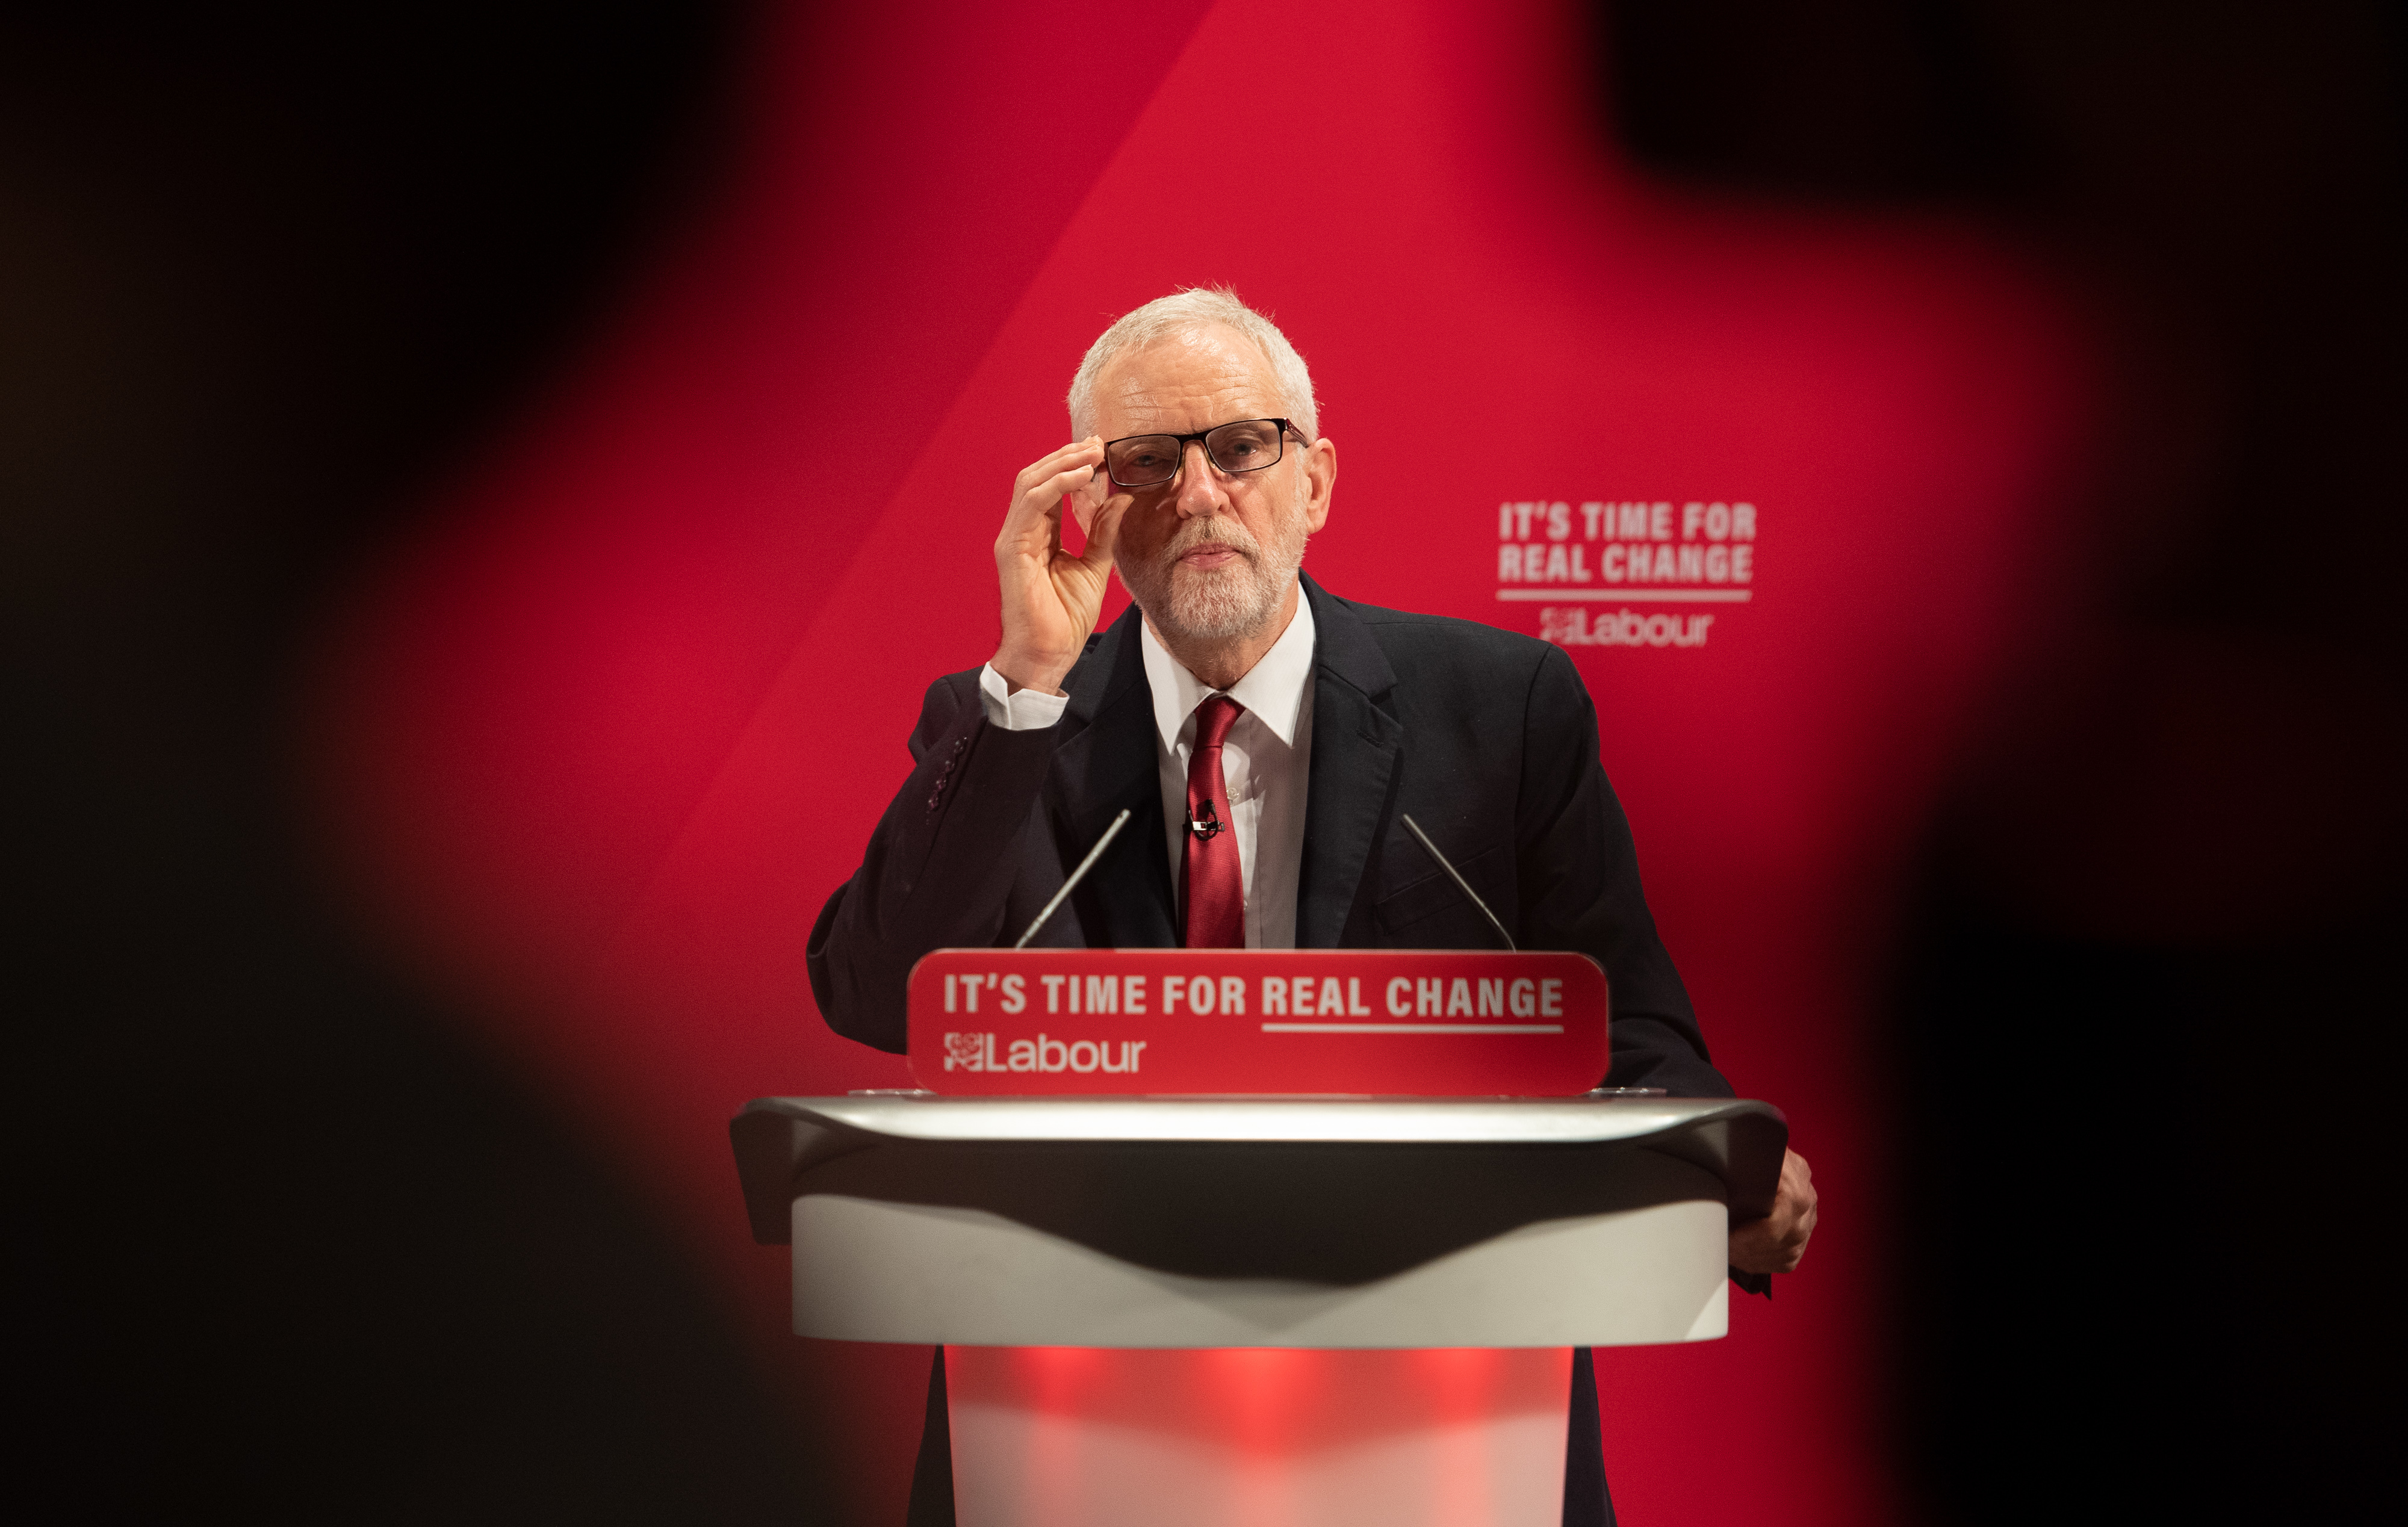 Labour Party leader Jeremy Corbyn at the launch of the Labour Party race and faith manifesto at the Bernie Grant Arts Centre, north London.